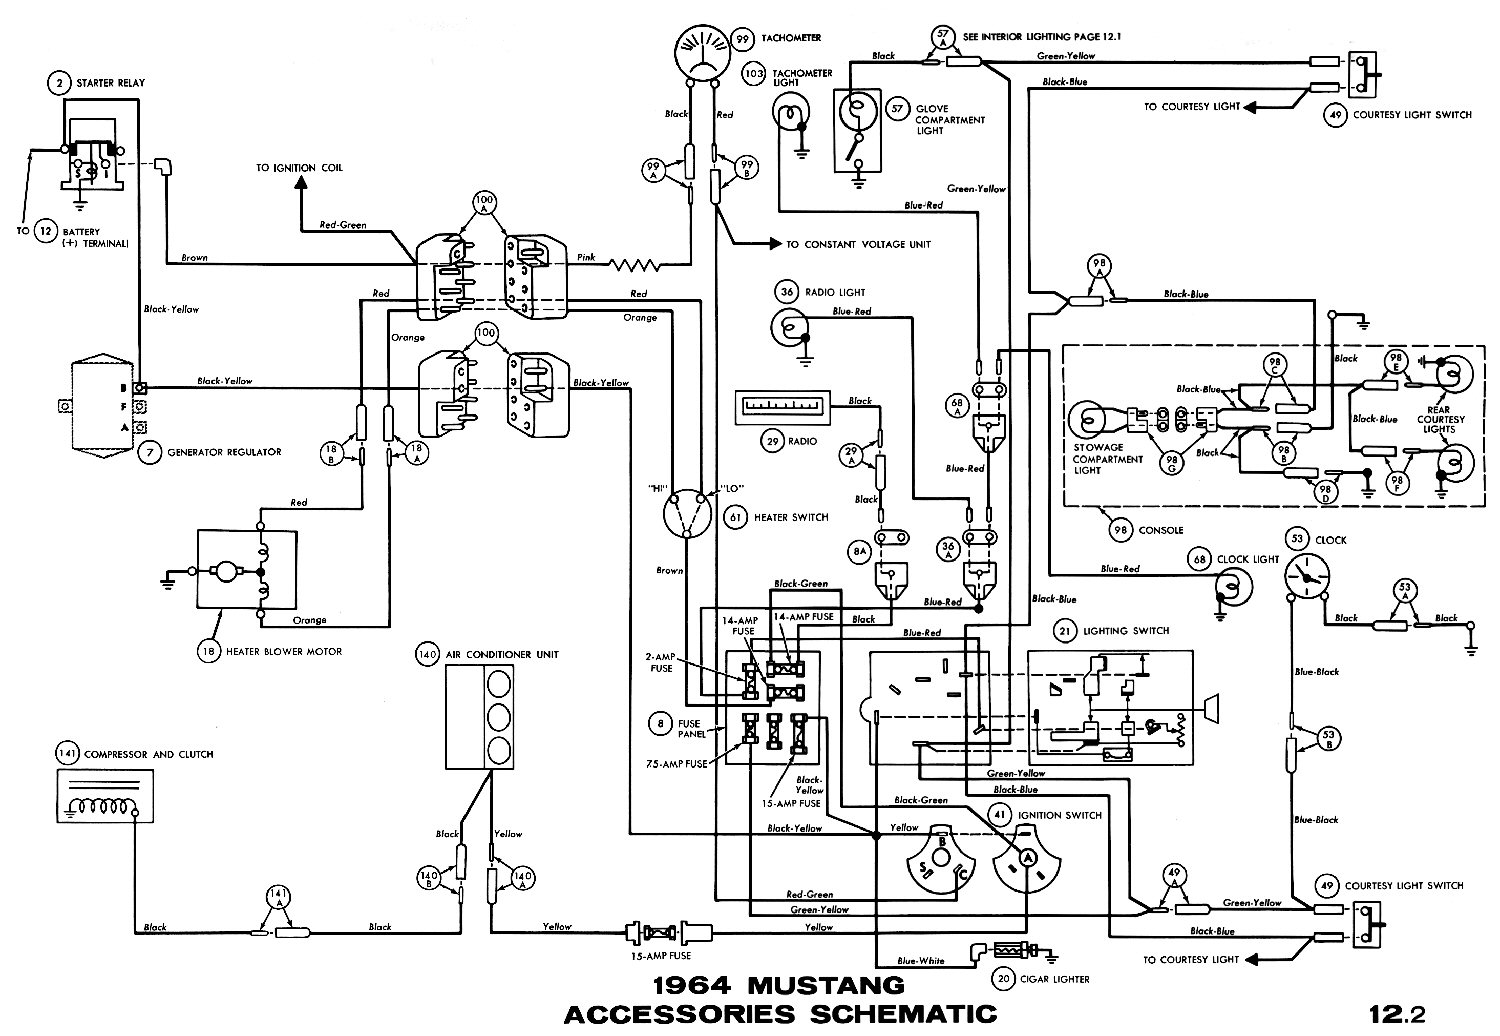 hight resolution of 1964 mustang accessories pictorial or schematic basic electronics 1964 1 2 mustang fuse box diagram